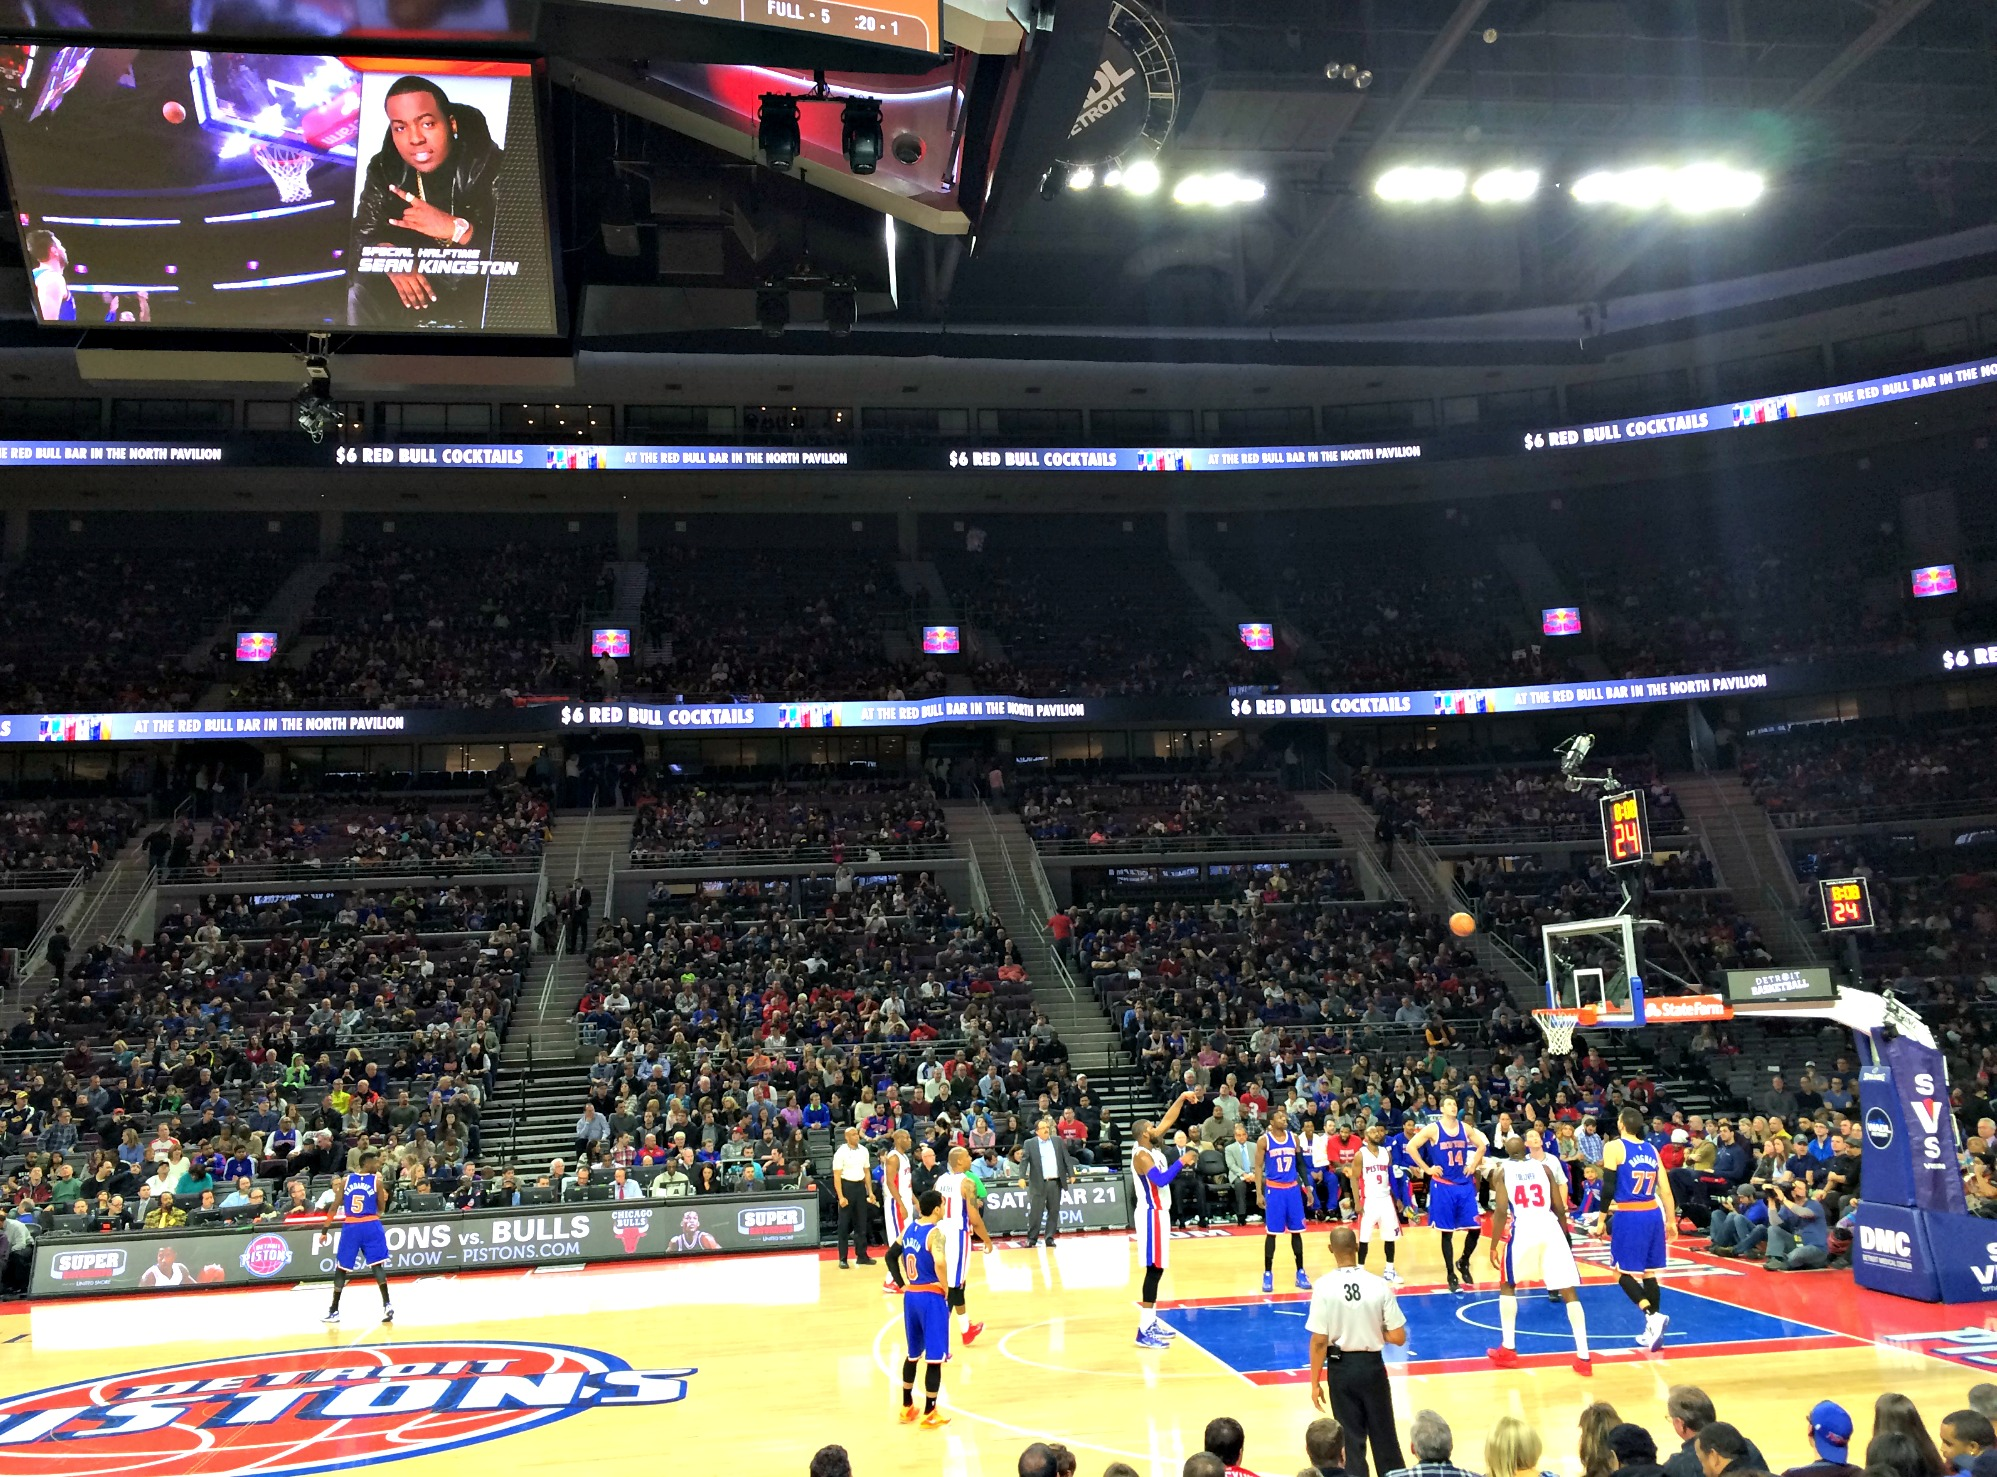 pistons game vs knicks